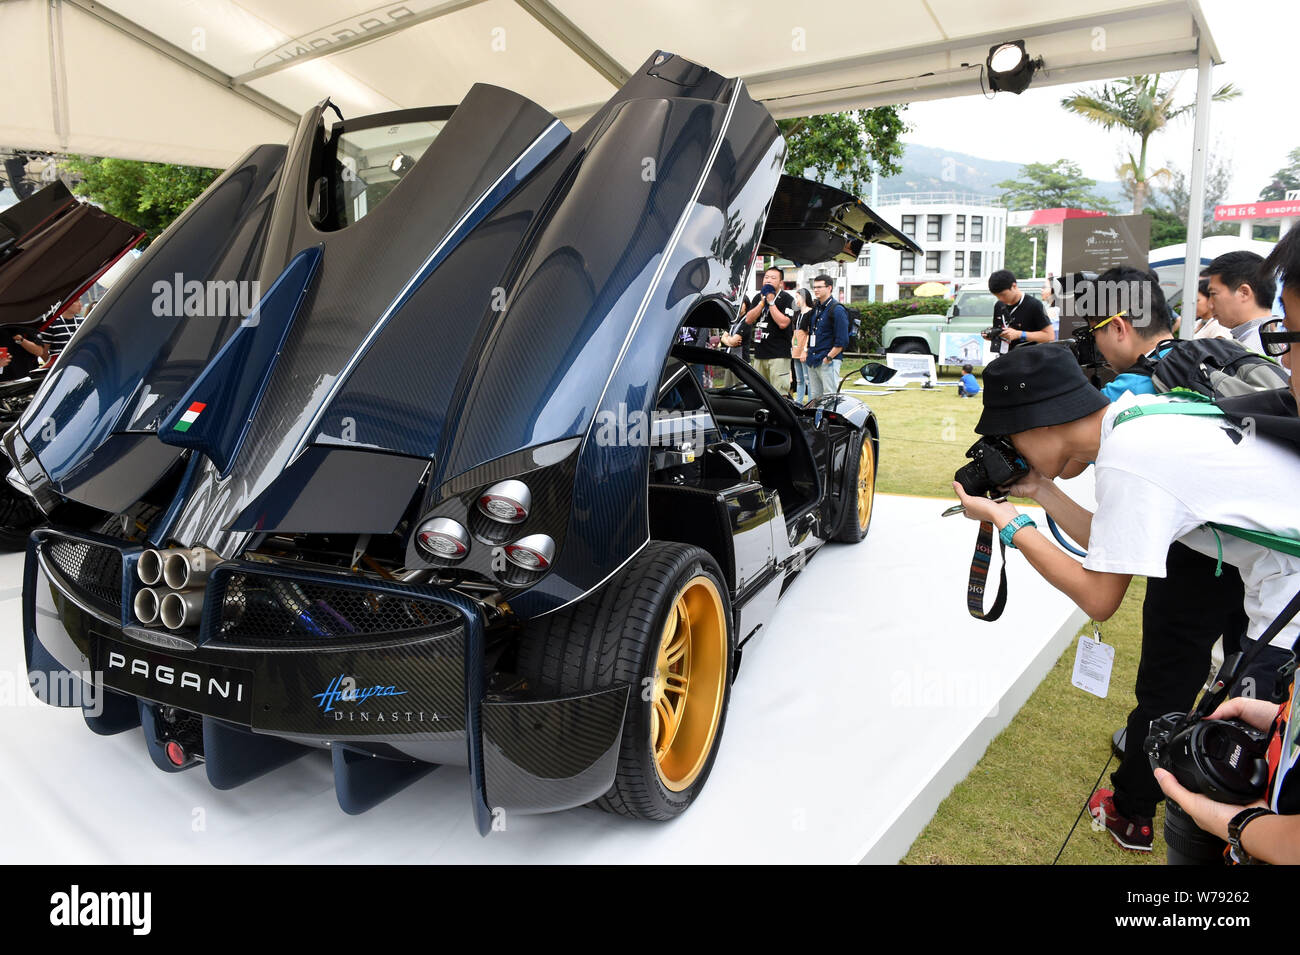 A Limited Edition Huayra Dinastia Sports Car Of Italian Manufacturer Pagani Automobili S P A Is On Display During The Second Gold Coast Motor Festiva Stock Photo Alamy